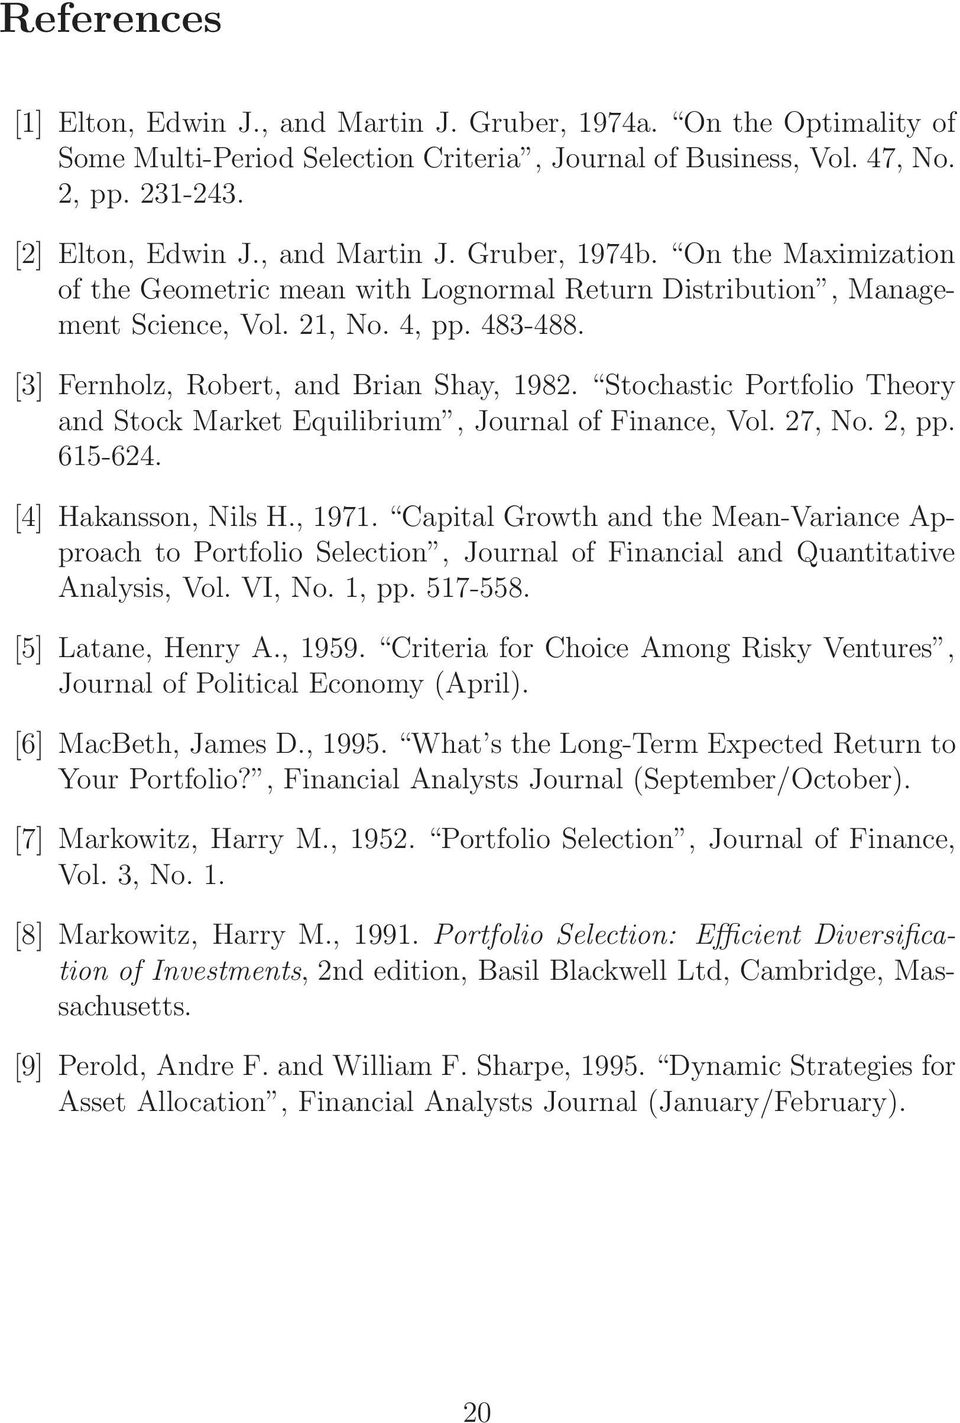 [3] Fernholz, Robert, and Brian Shay, 1982. Stochastic Portfolio Theory and Stock Market Equilibrium, Journal of Finance, Vol. 27, No. 2, pp. 615-624. [4] Hakansson, Nils H., 1971.